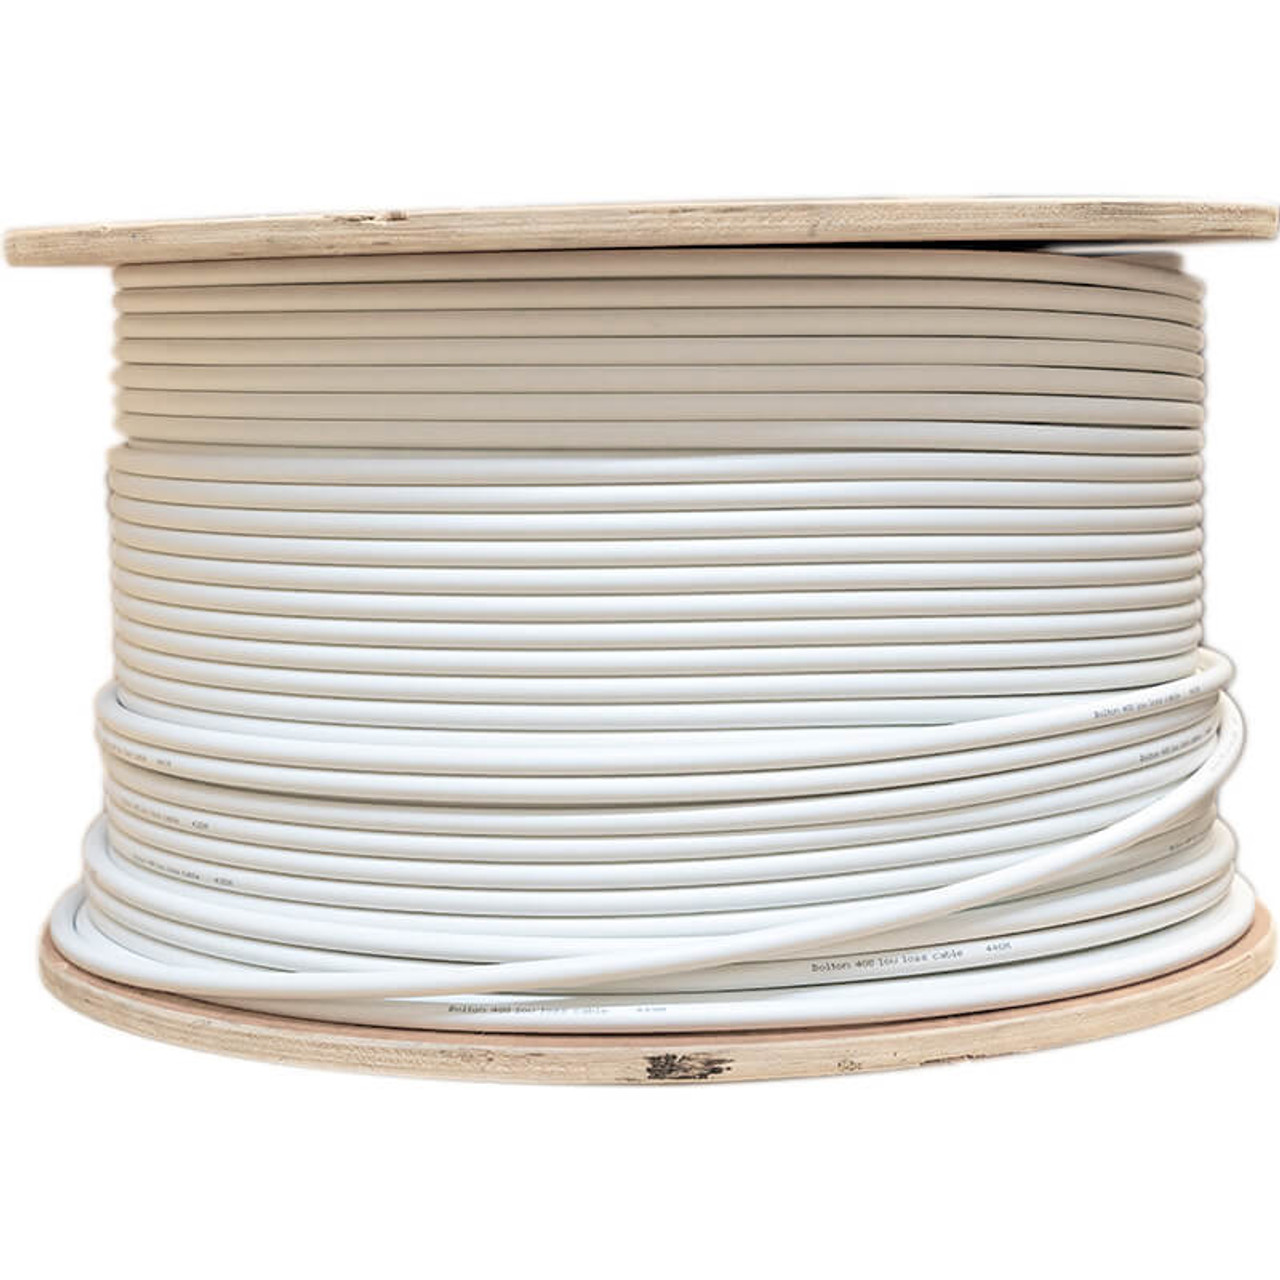 Bolton 400 Low Loss Cable - PE White Jacket Priced Per Foot